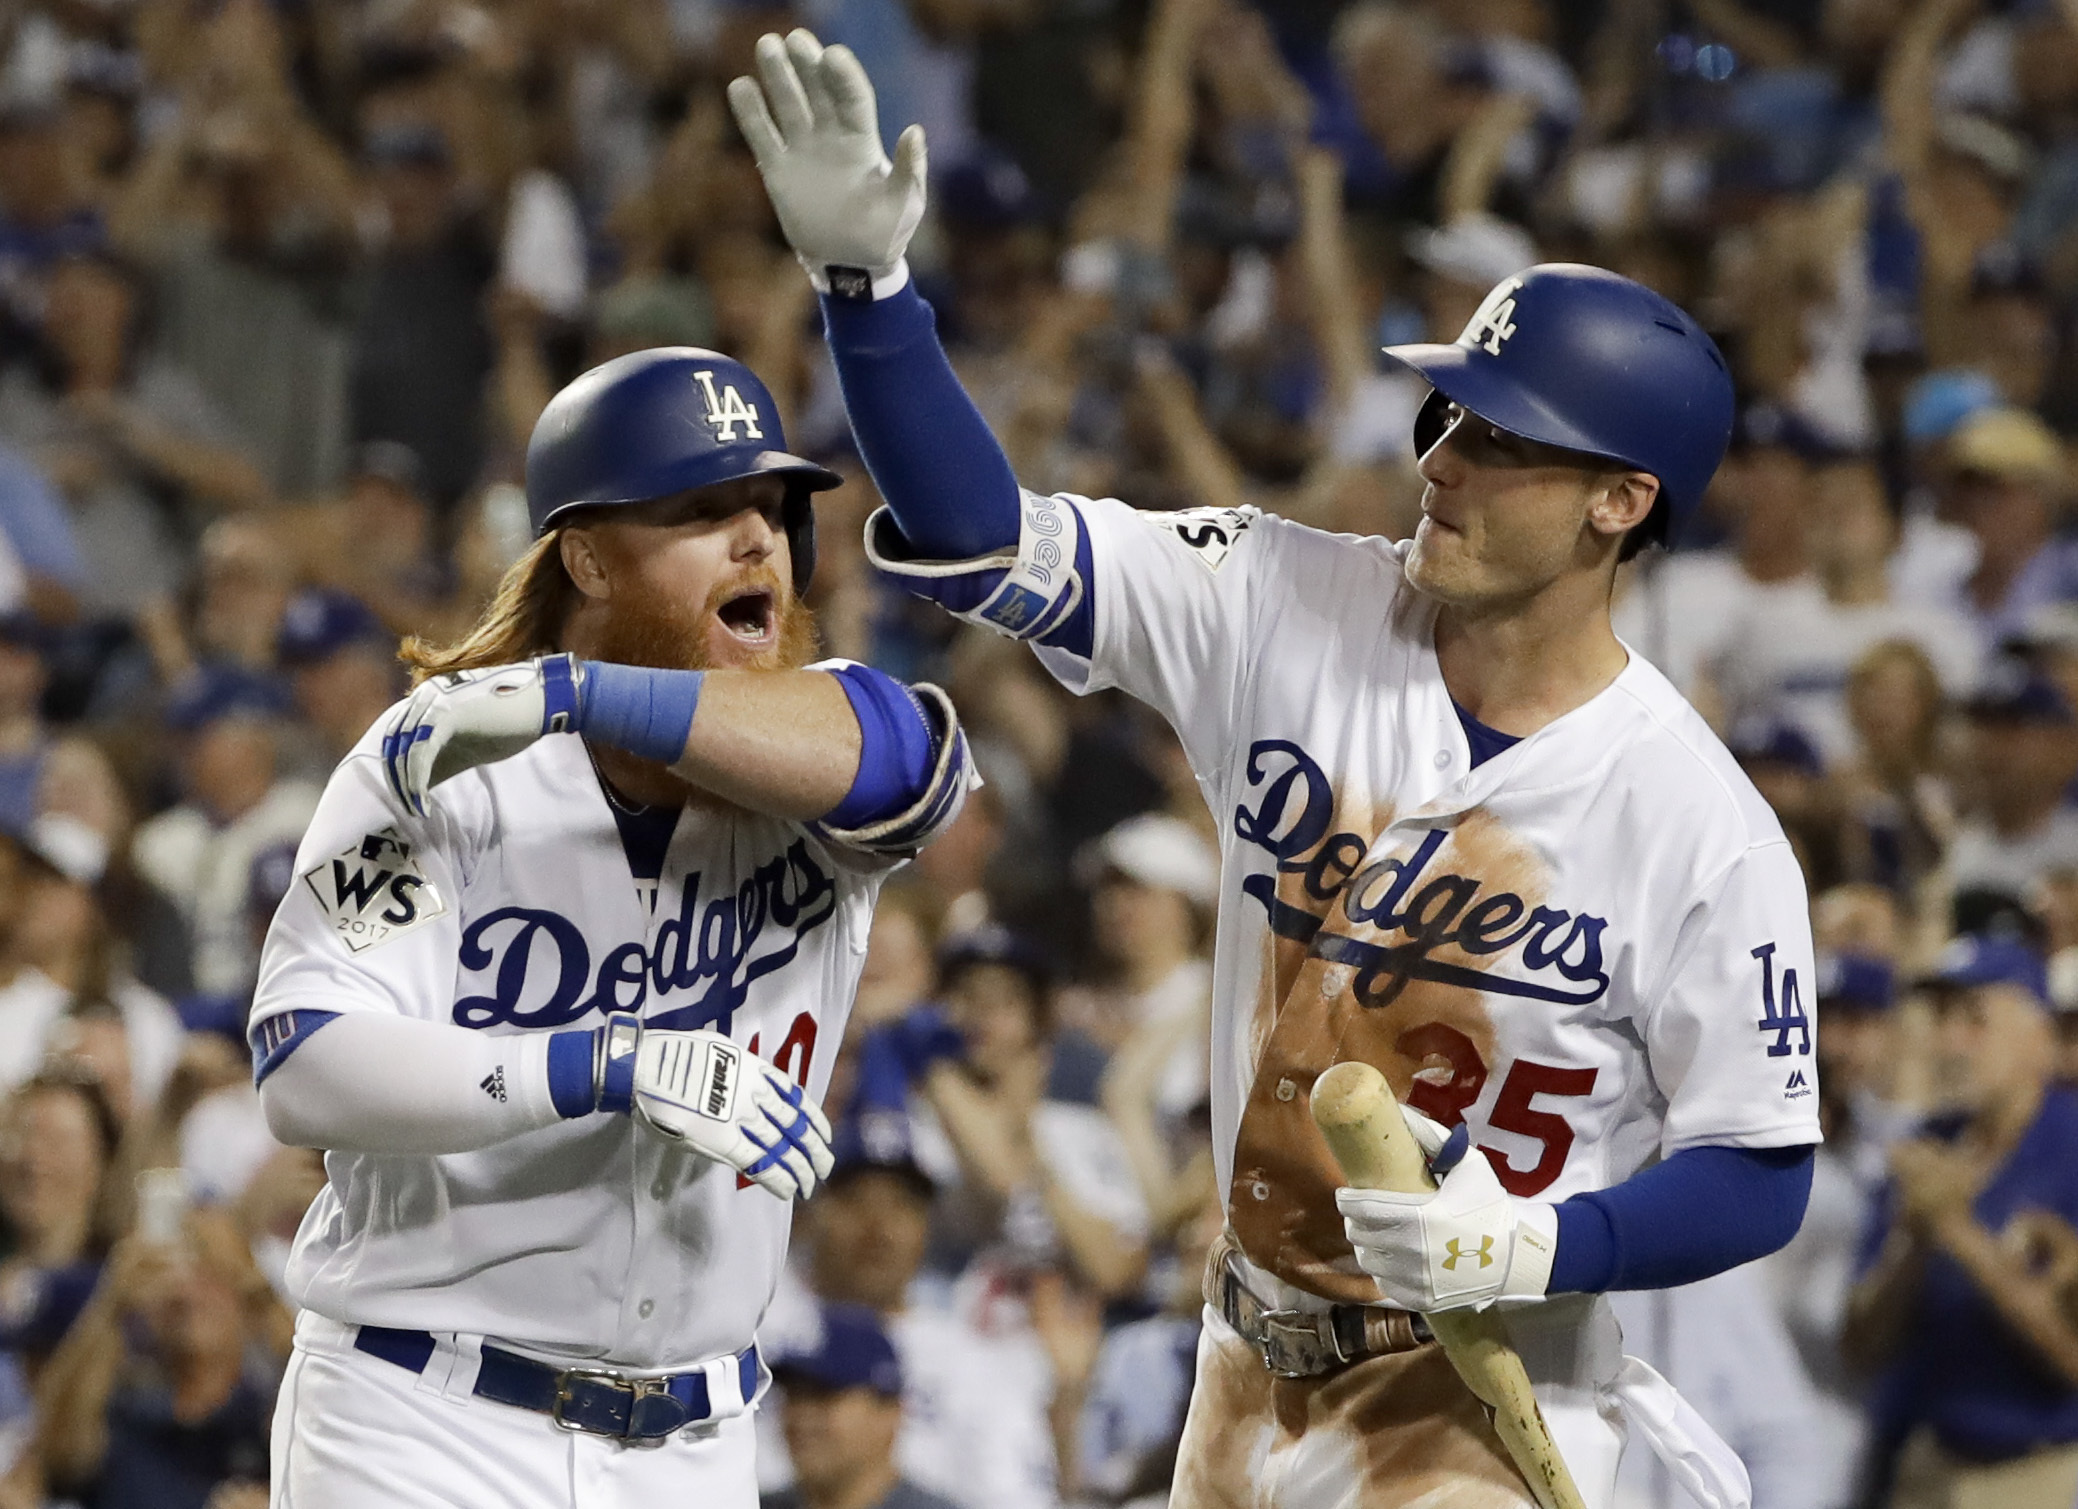 <div class='meta'><div class='origin-logo' data-origin='AP'></div><span class='caption-text' data-credit='(AP Photo/Matt Slocum)'>Los Angeles Dodgers' Justin Turner, left, celebrates his two-run home run with Cody Bellinger against the Houston Astros during the sixth inning of Game 1 in Los Angeles.</span></div>